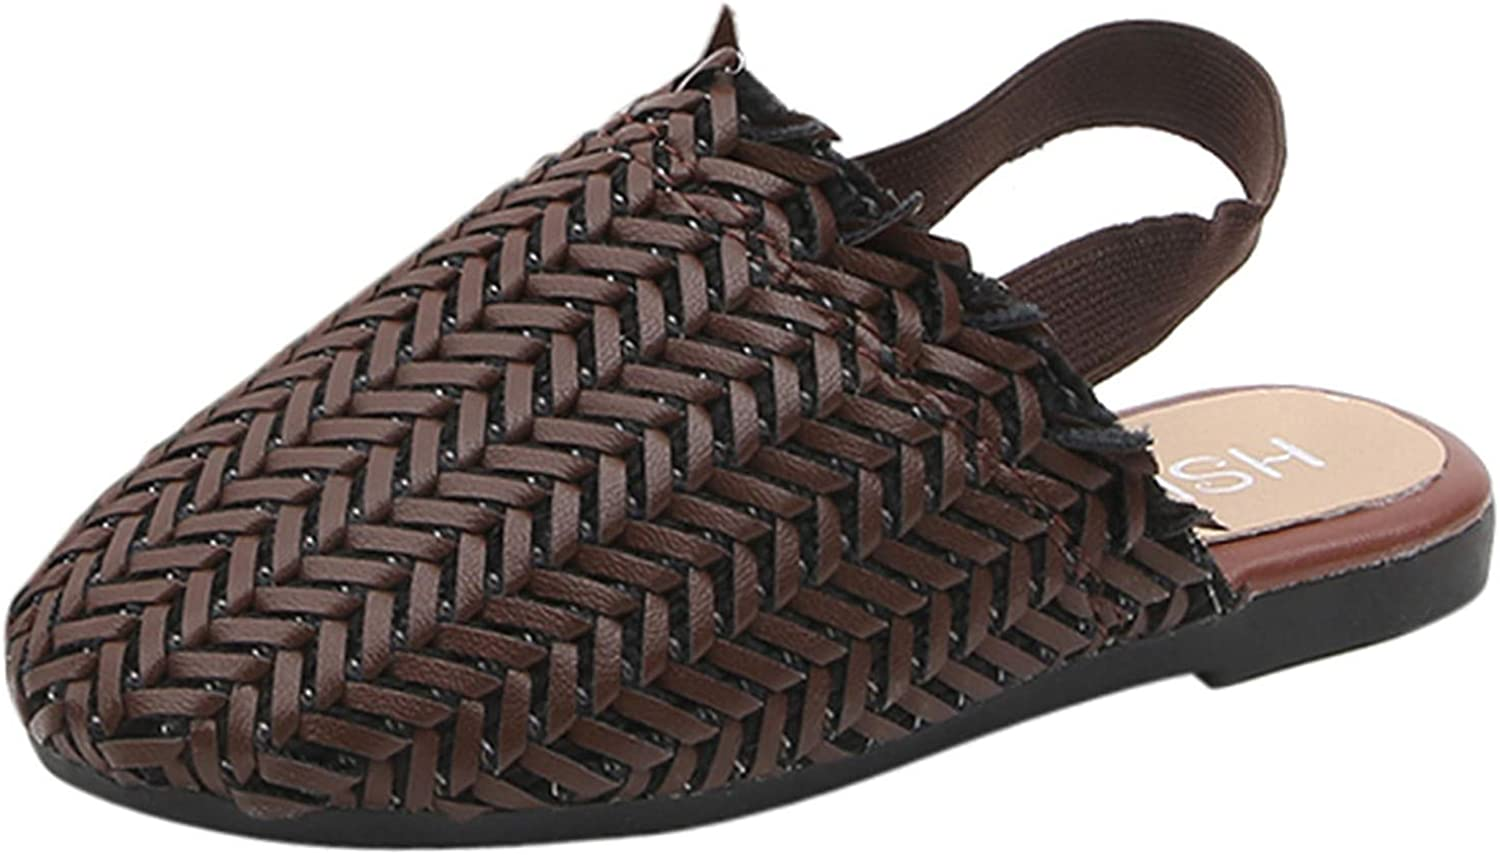 Kid Discount is also underway Girls Sandals Weave Retro Todd Shoes Max 49% OFF Single Princess